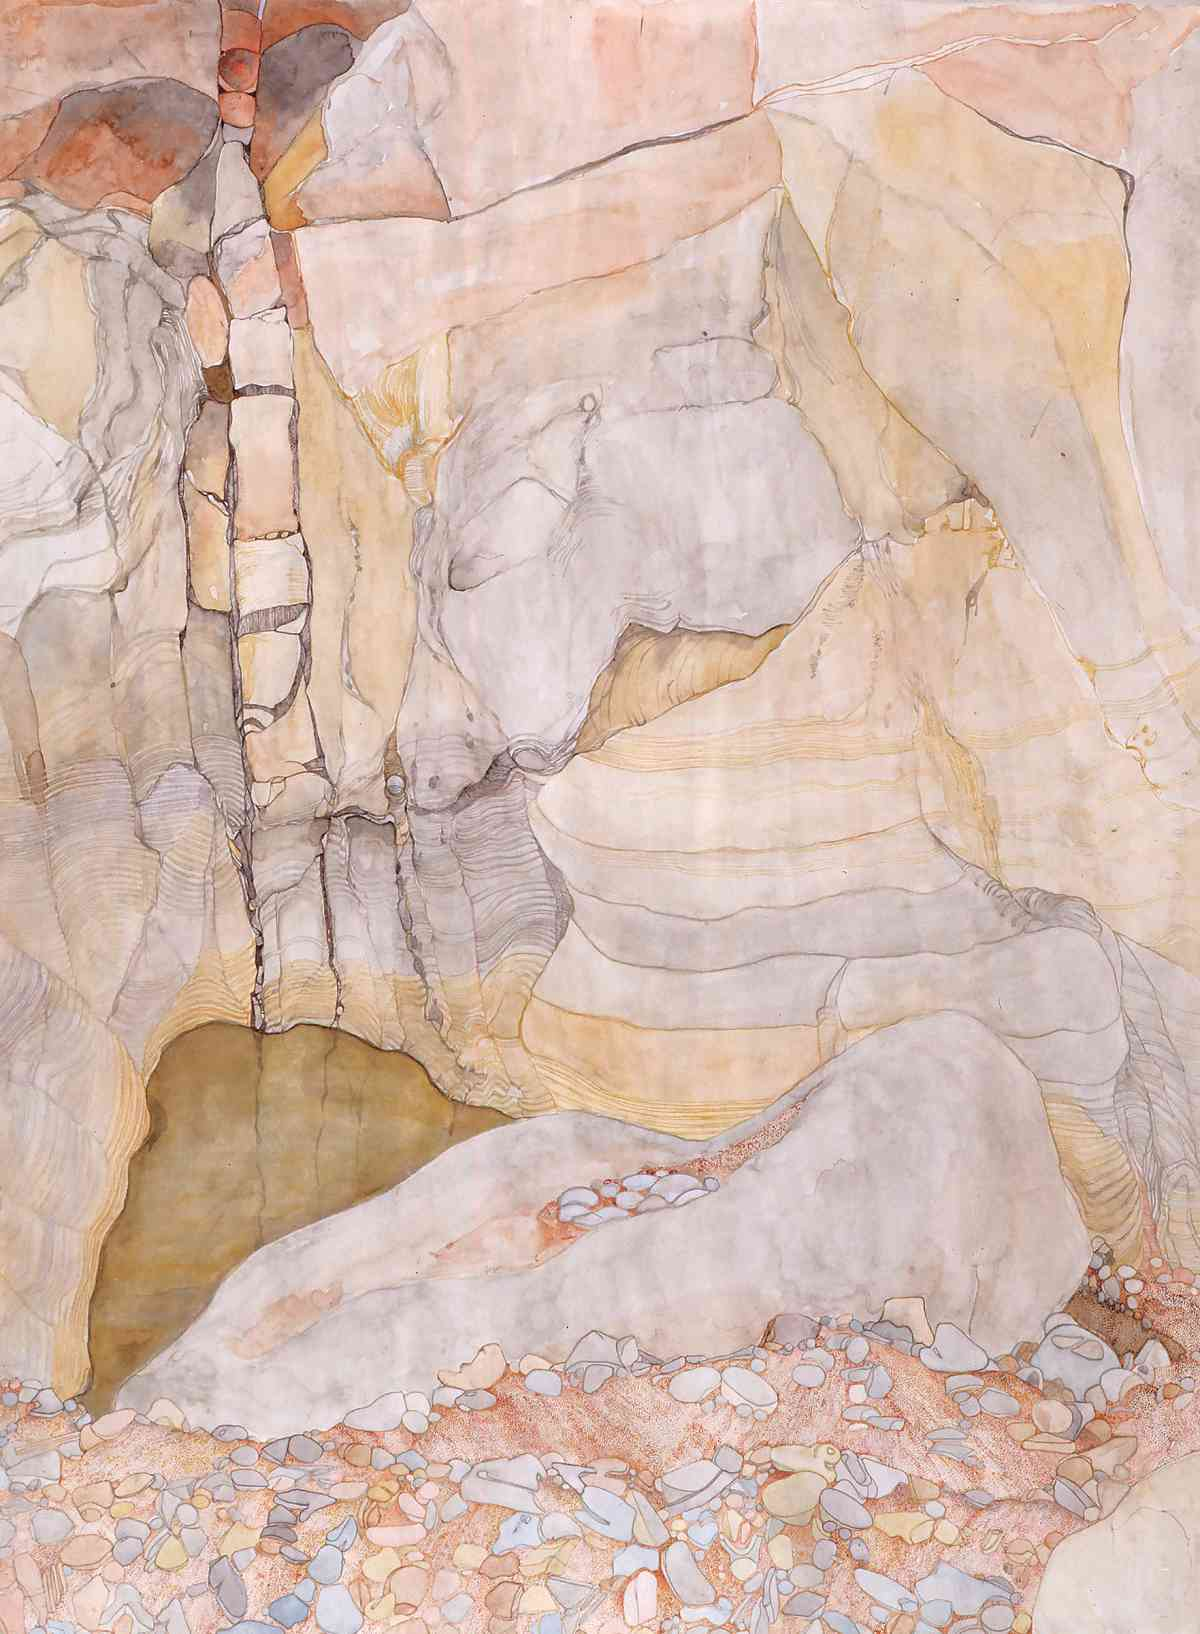 Roma Gorge from above, Spinifex Pigeon Waterhole, watercolour, 113 X 157cm